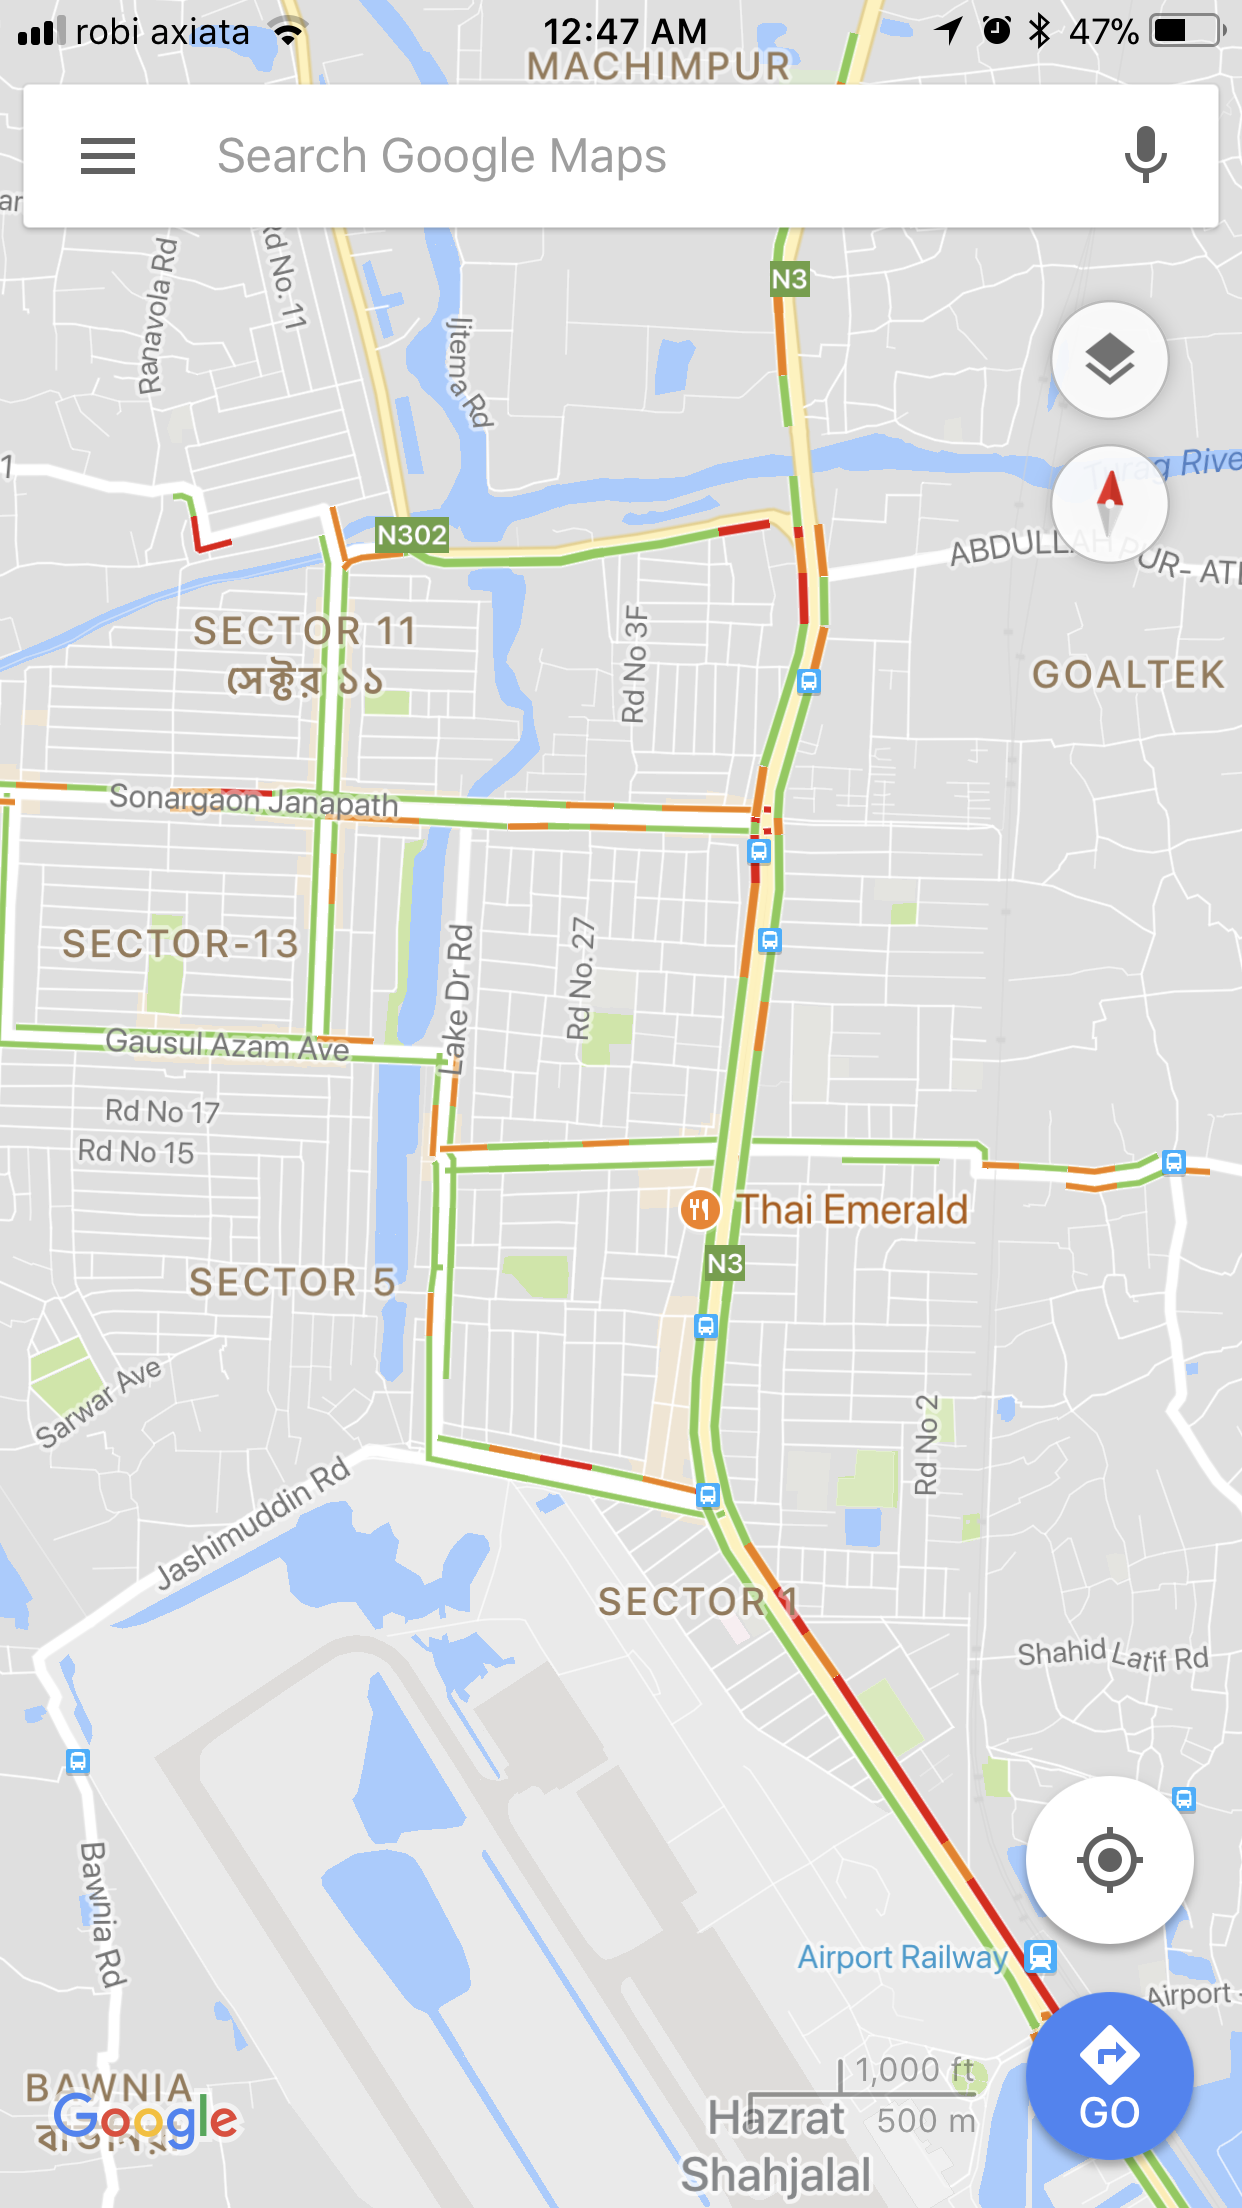 real time traffic update in bangladesh is live in google maps